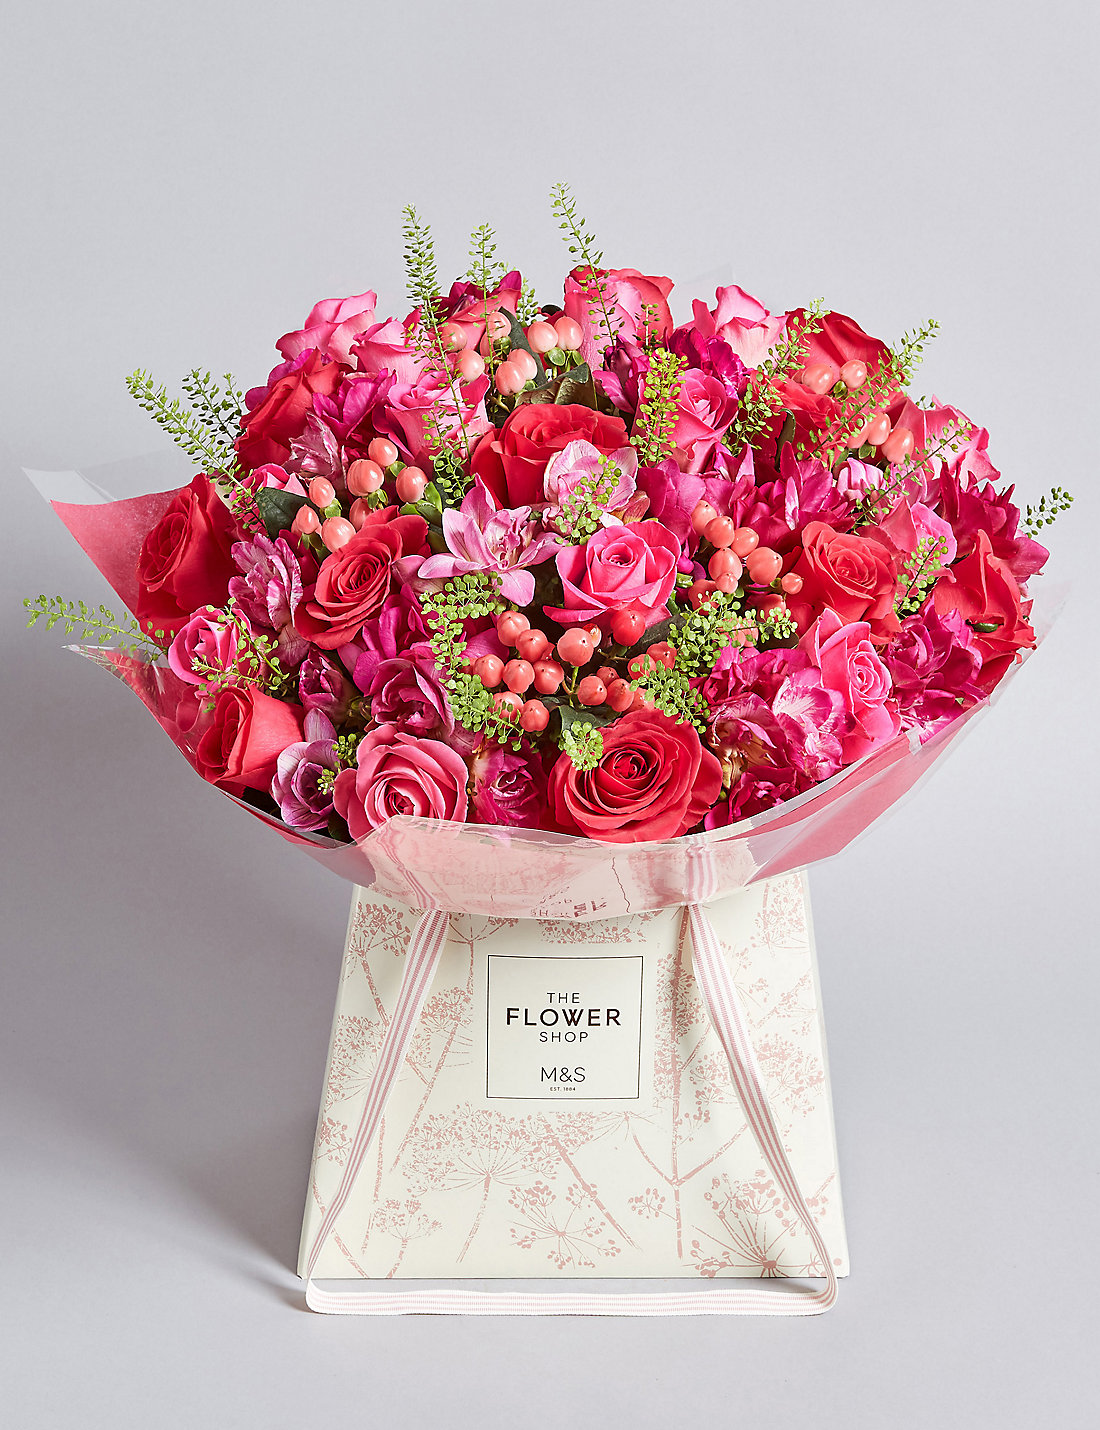 flower gifts bags boxes online m s